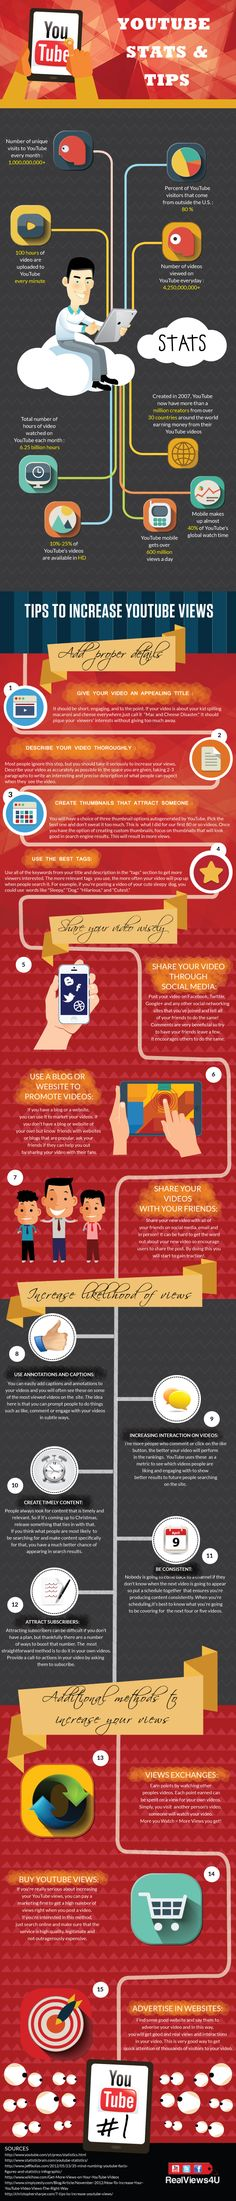 How to Increase YouTube Views [Infographic]